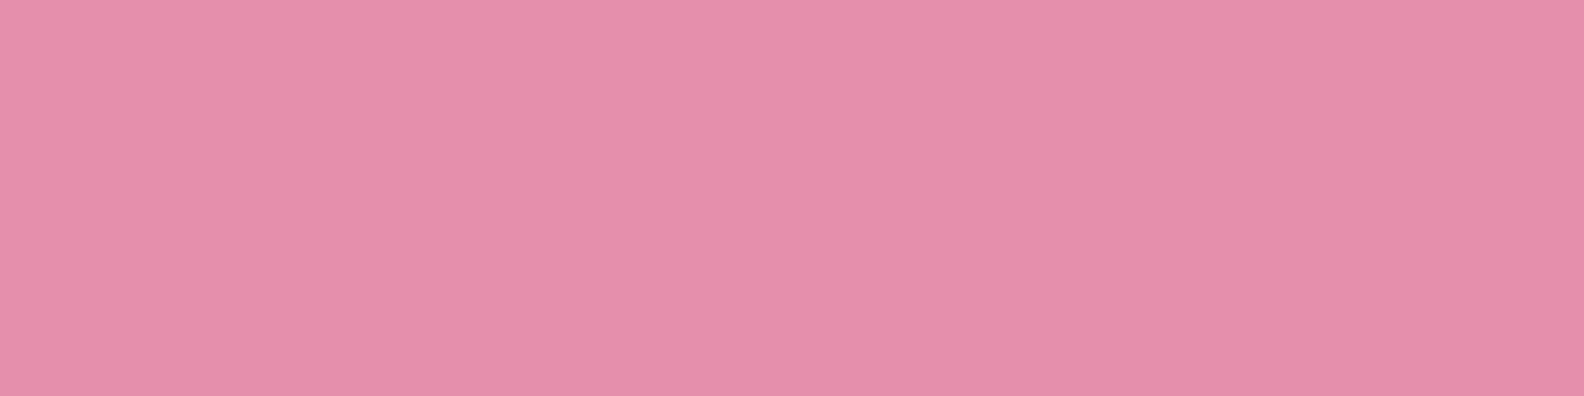 1584x396 Charm Pink Solid Color Background